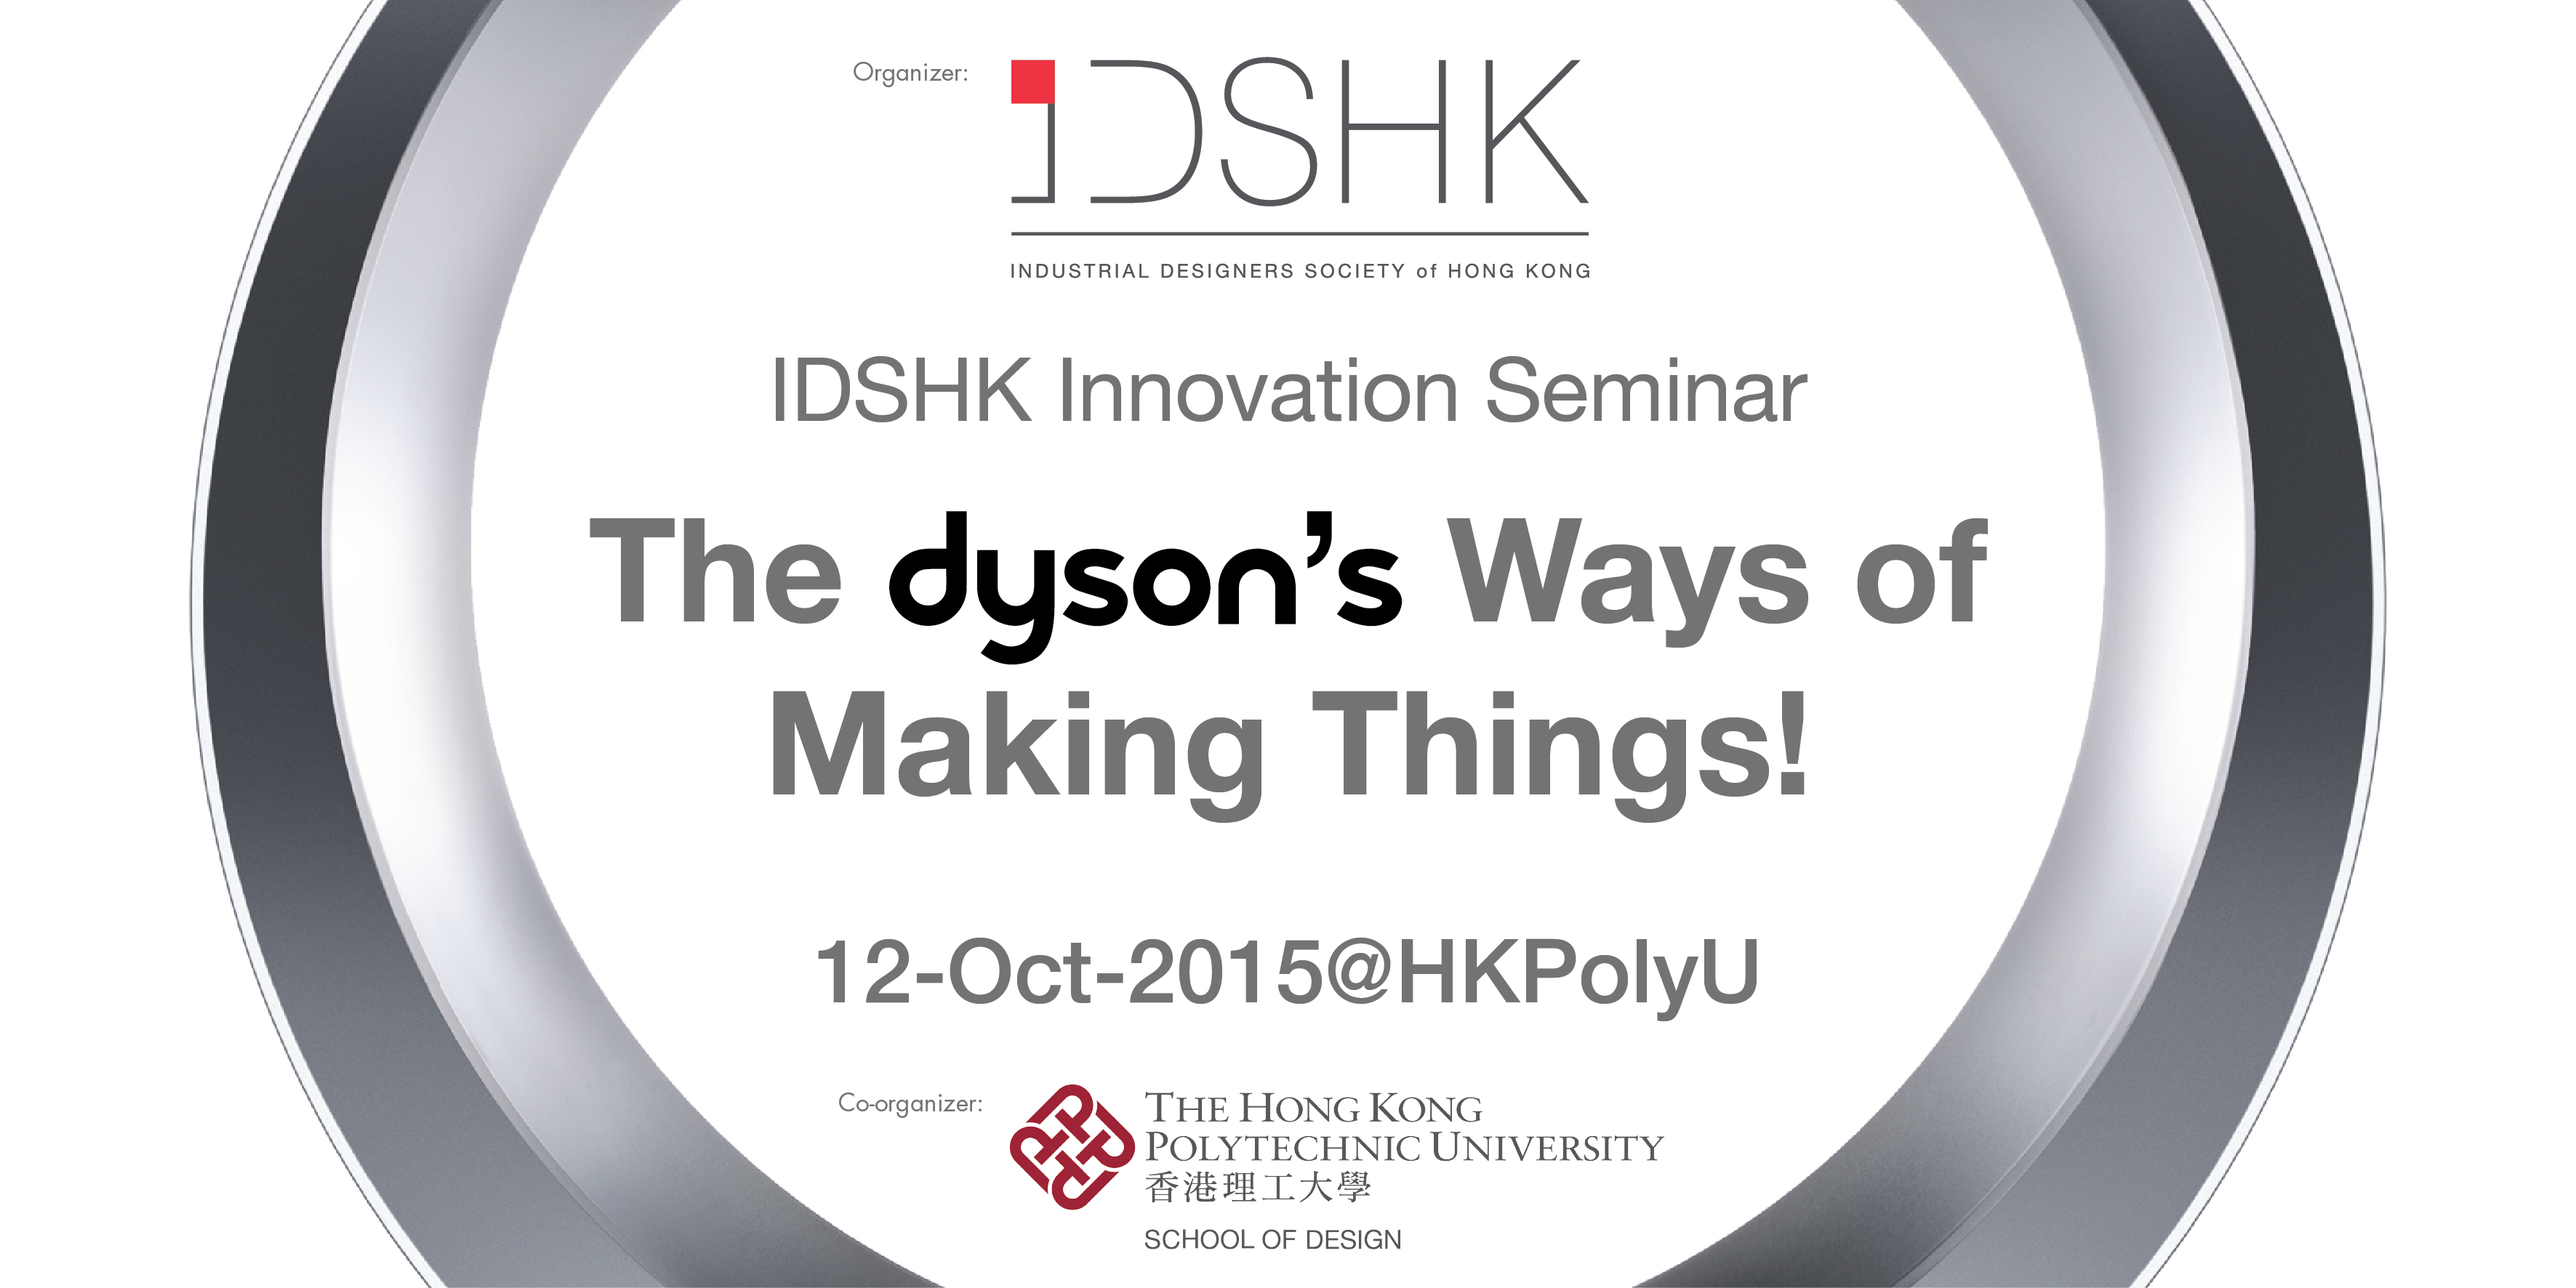 IDSHK Innovation Seminar - The Dyson's Way of Making Things!